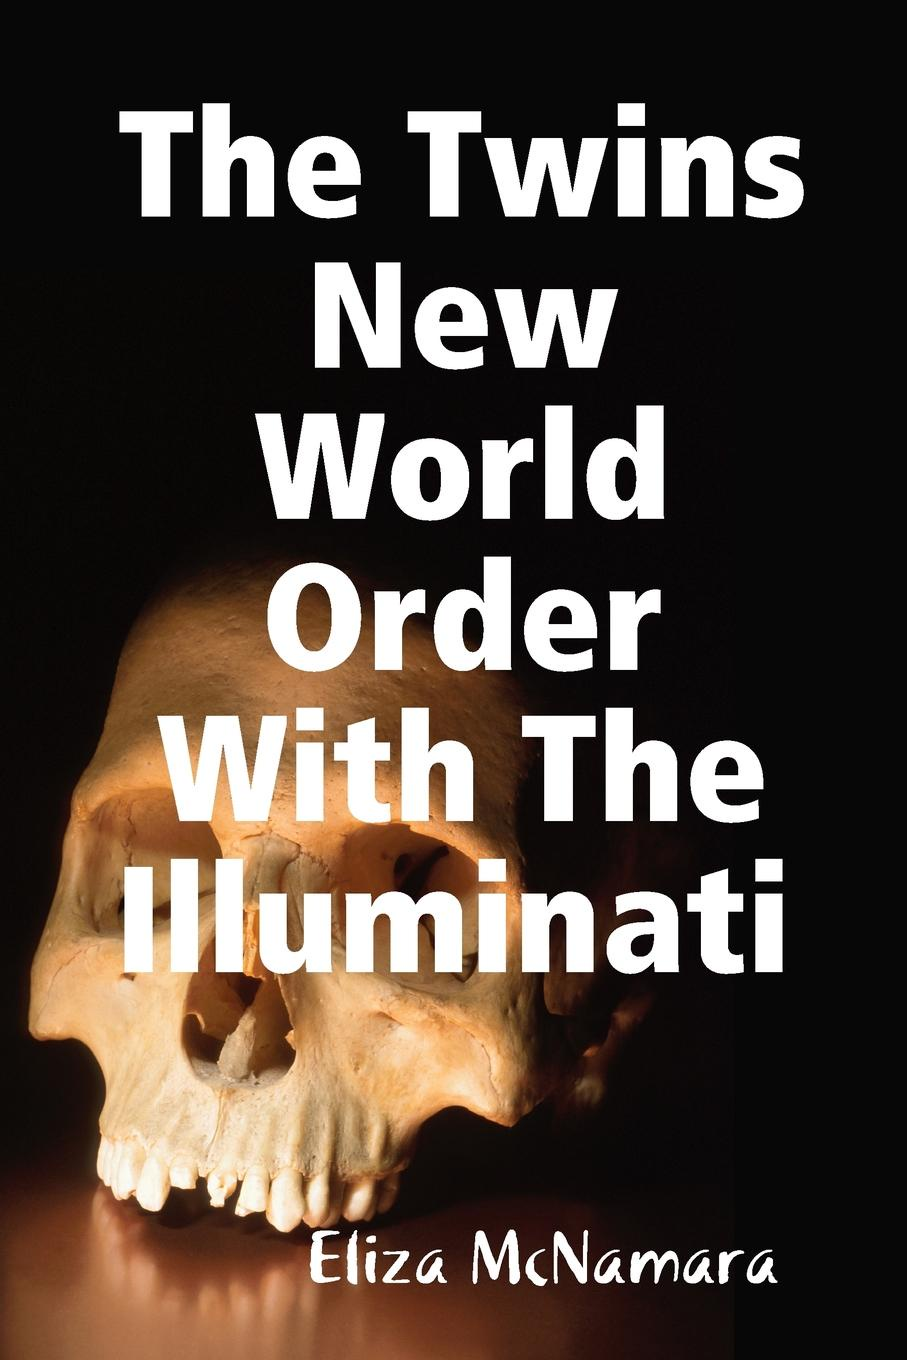 Eliza McNamara The Twins New World Order With Illuminati